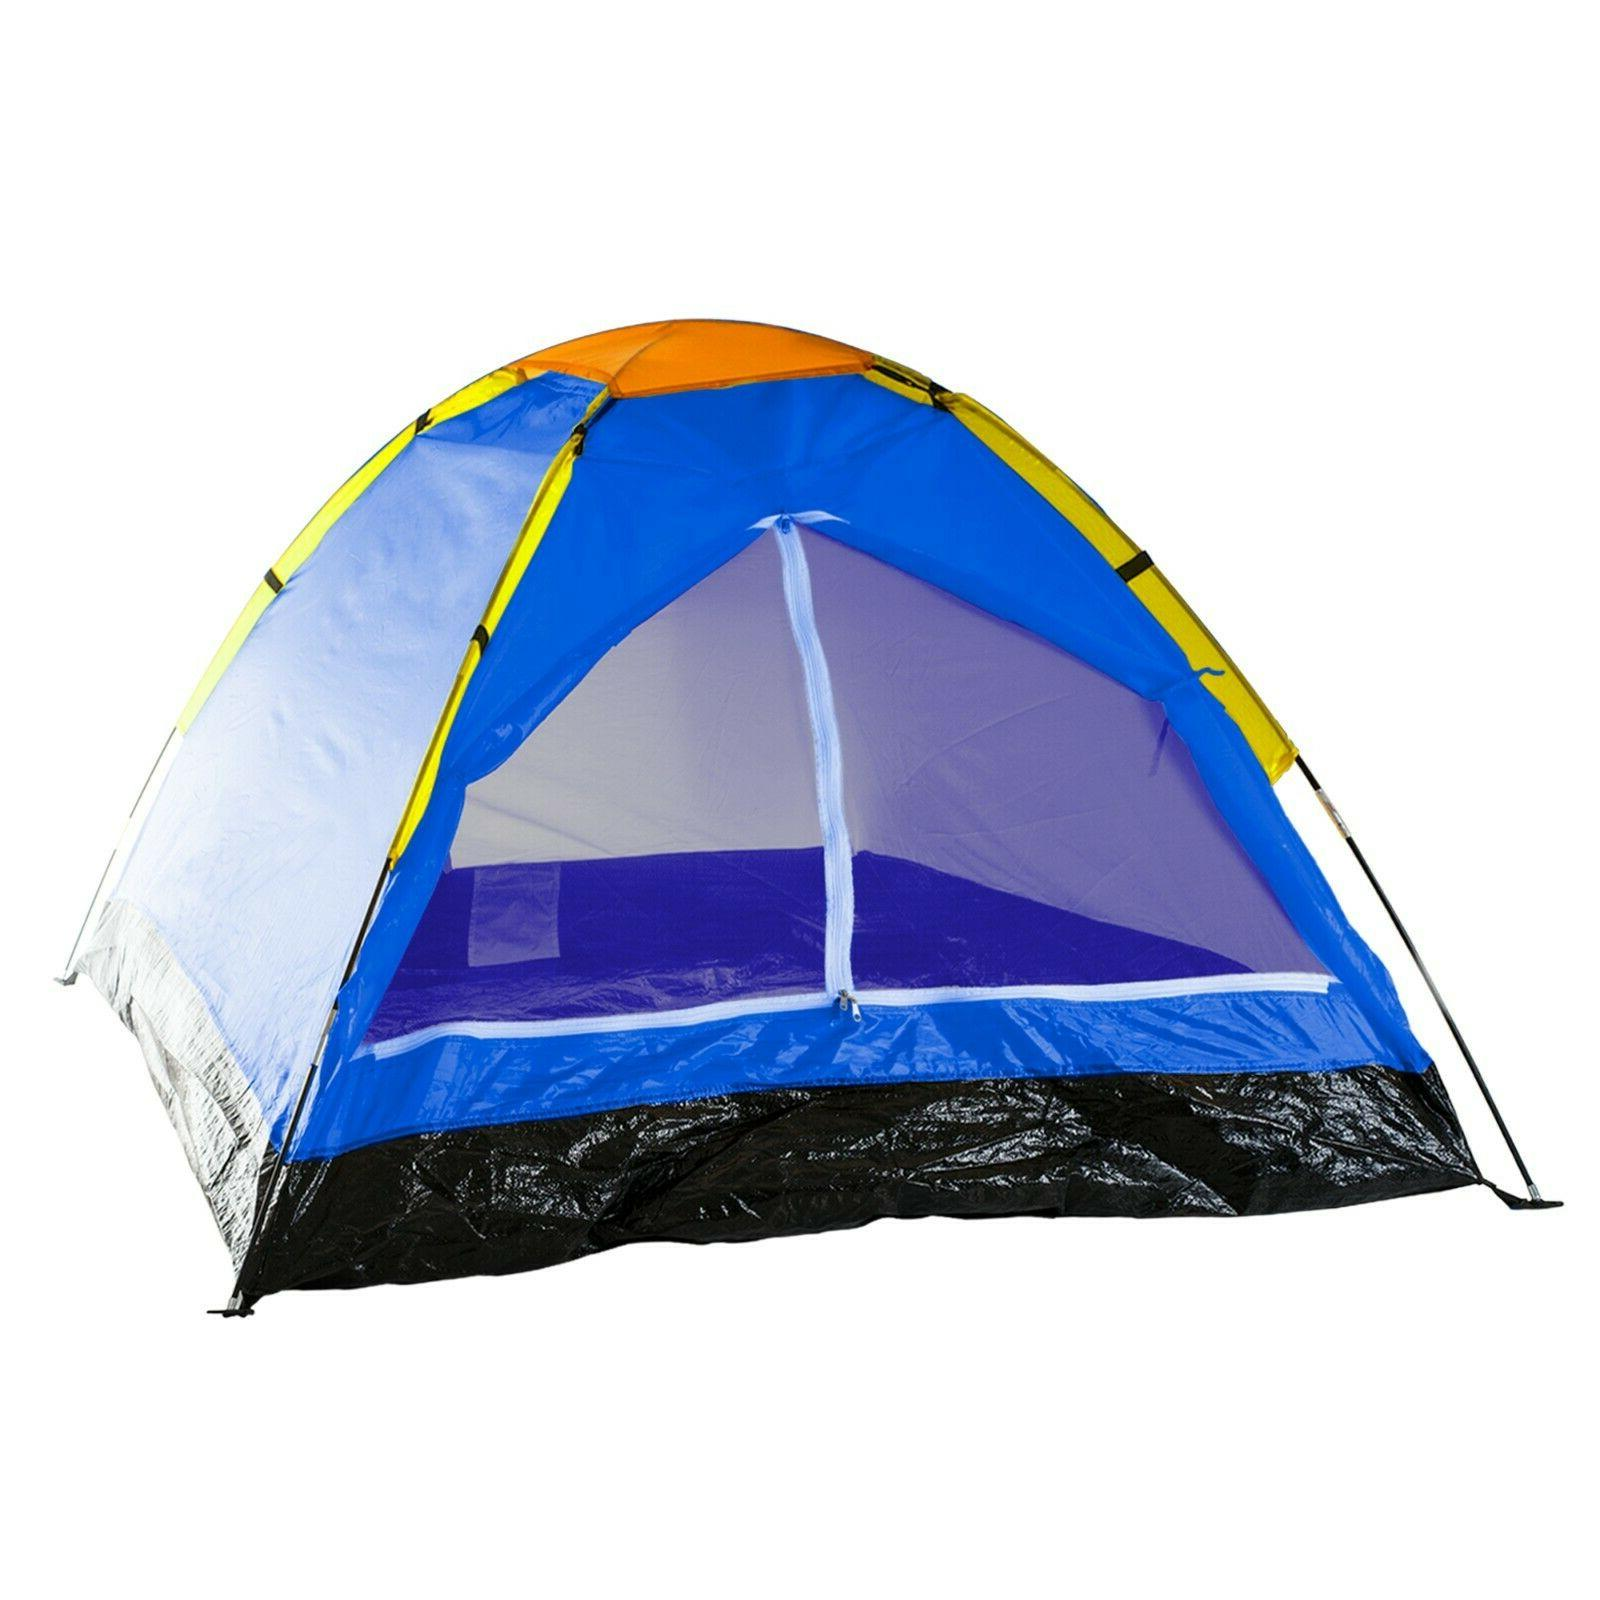 2 person dome tent camping hiking tents